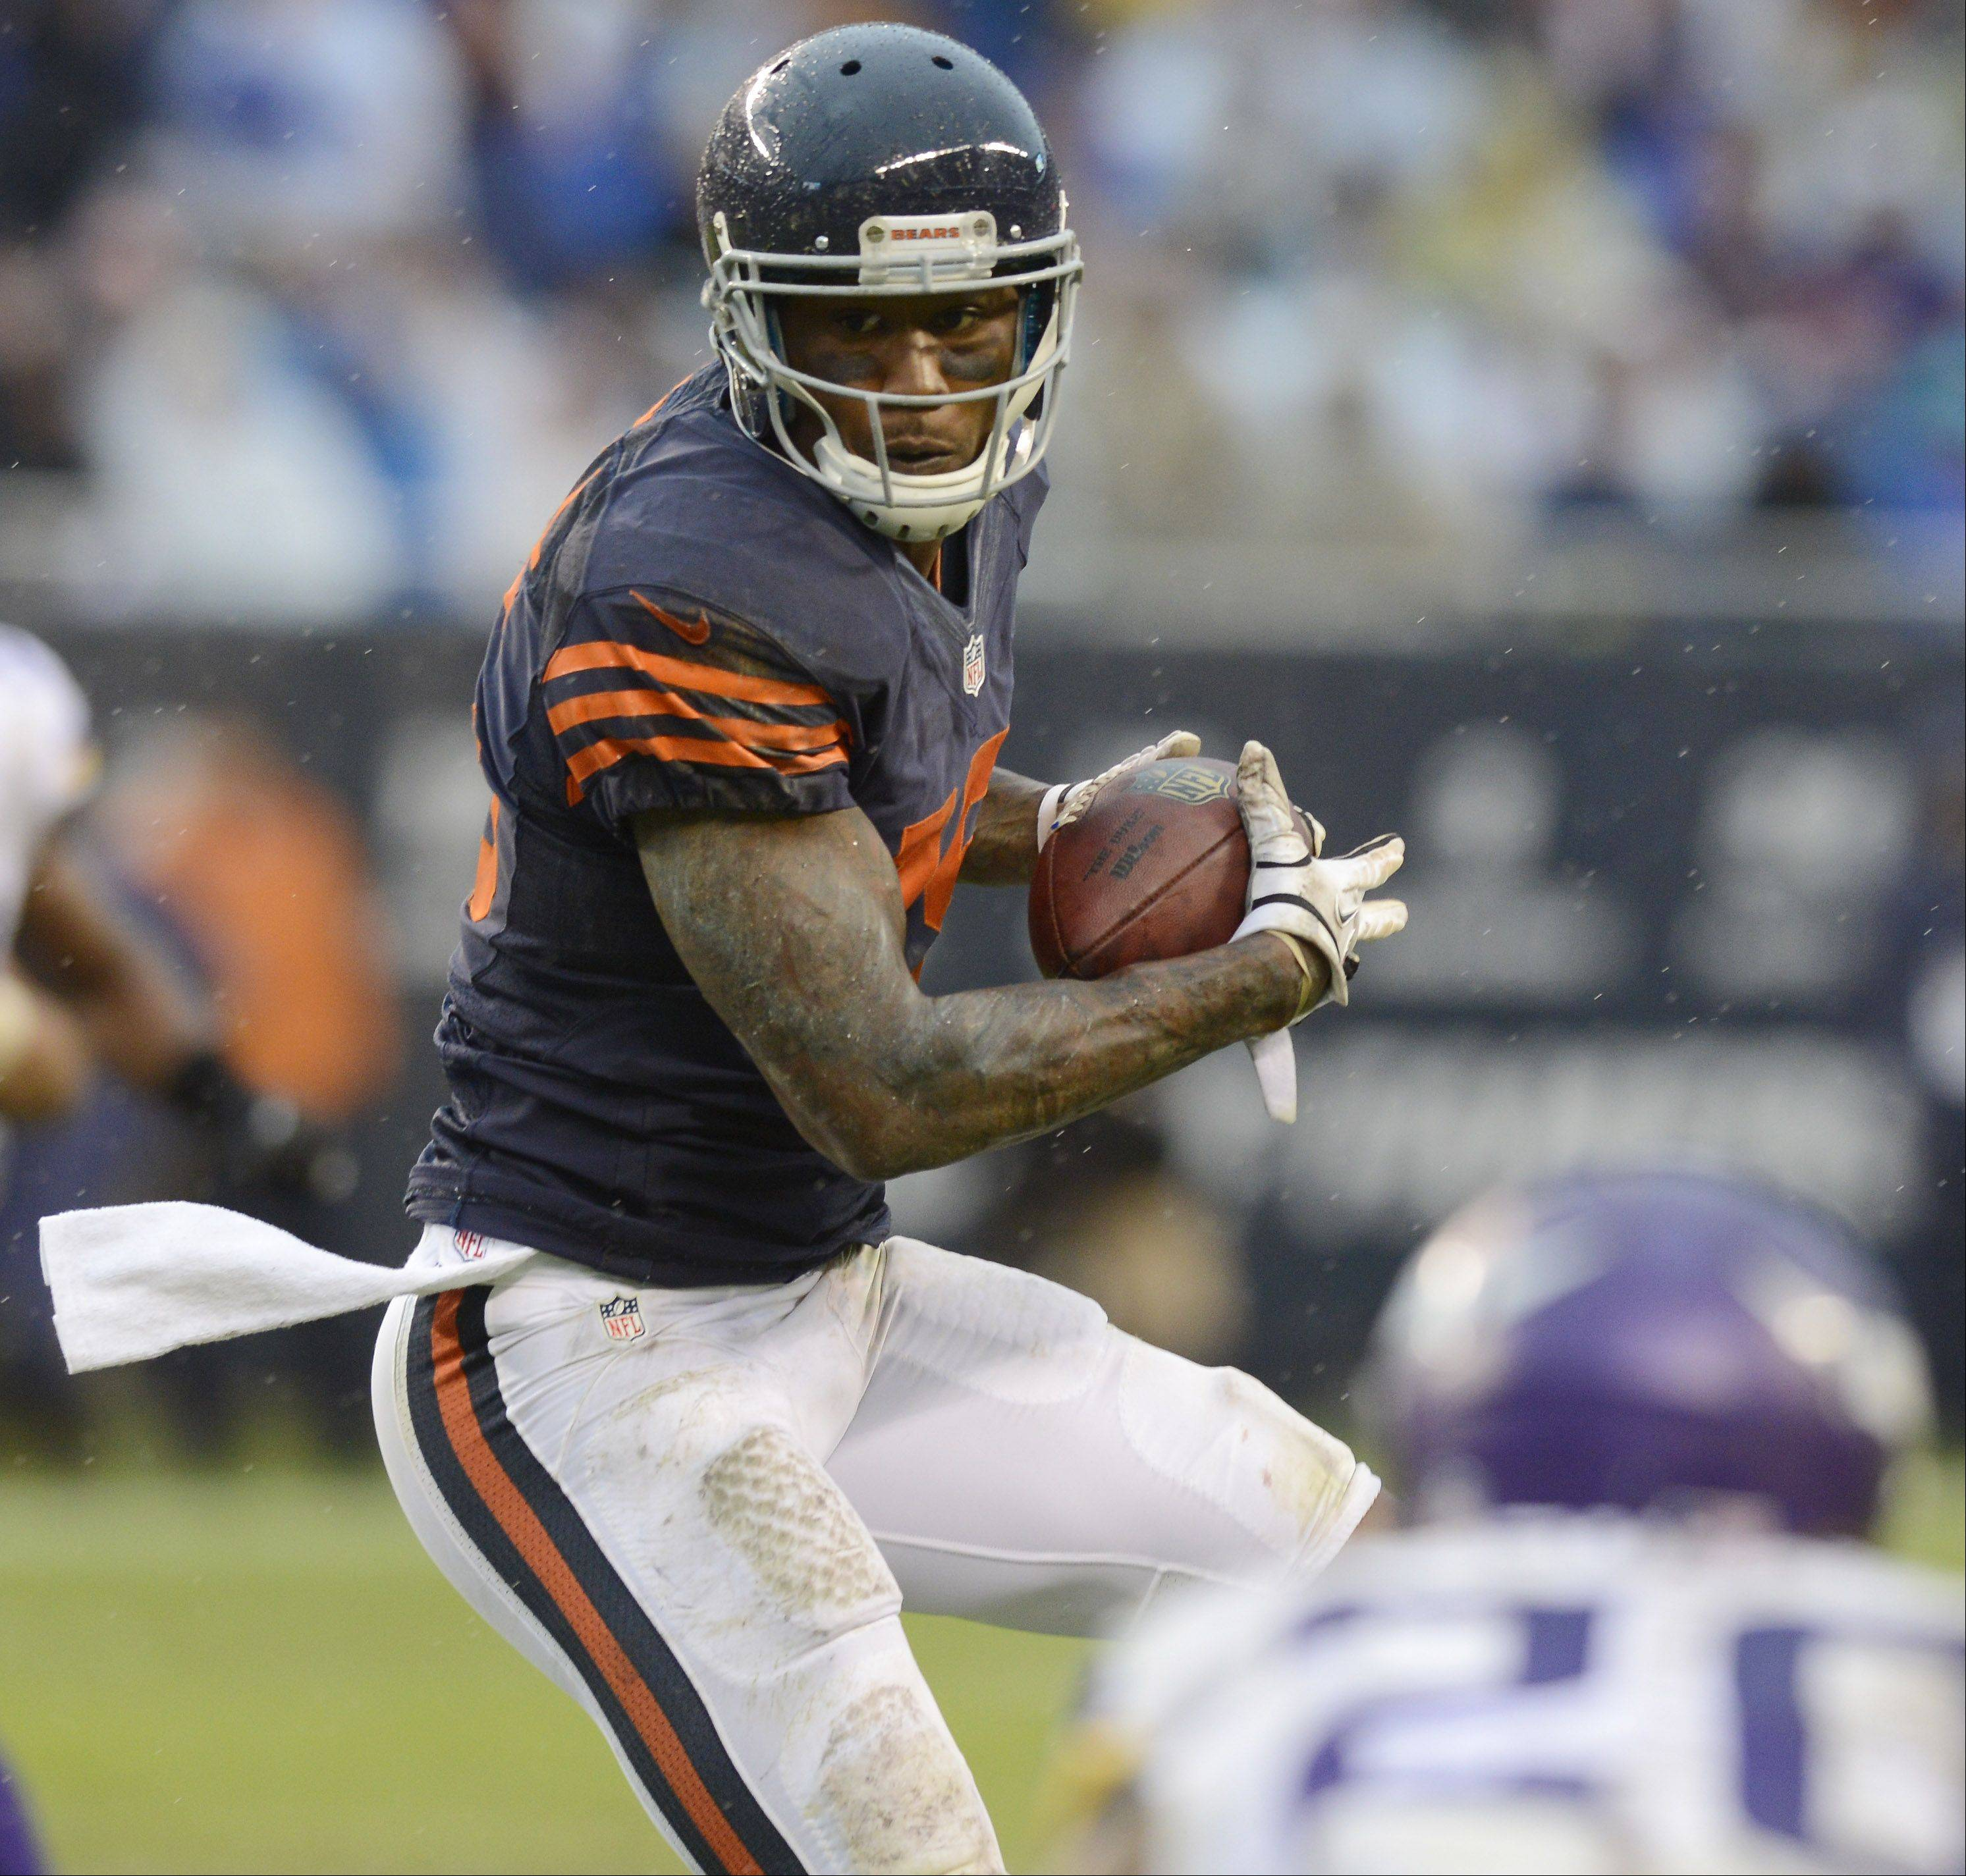 The Bears' Brandon Marshall says he's just like any other wide receiver who wants to catch the ball.